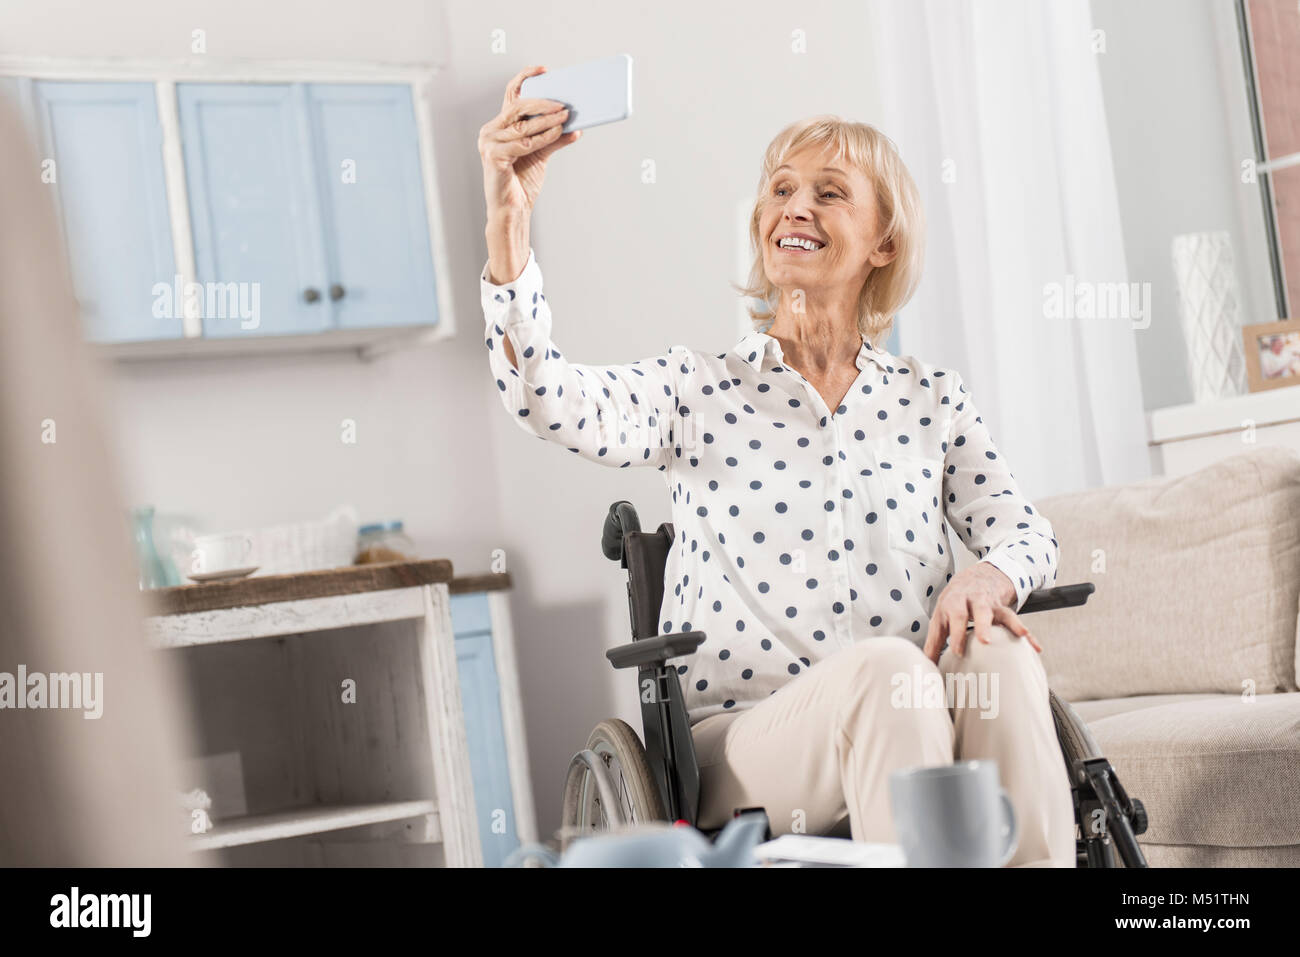 Handicapped mature woman taking selfie - Stock Image